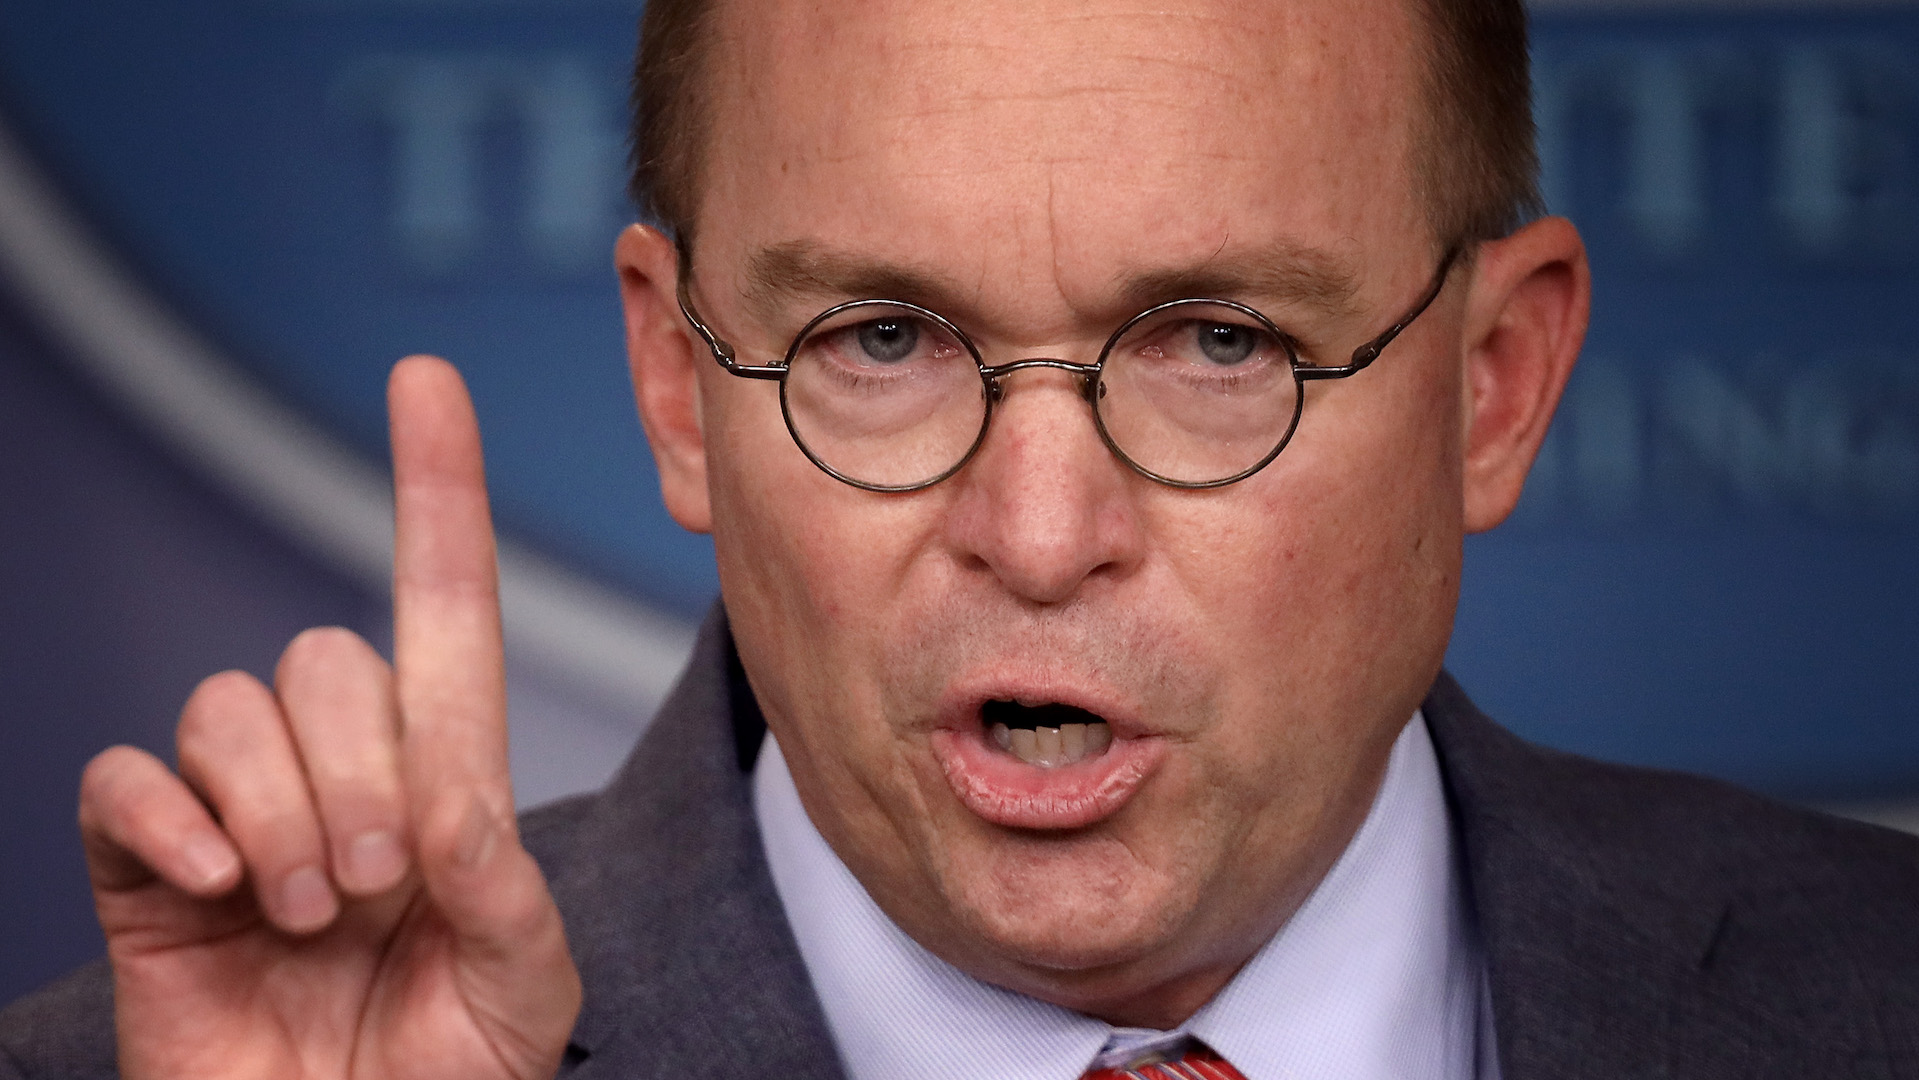 In admitting then denying quid pro quo, Mulvaney turns harsh impeachment spotlight on himself